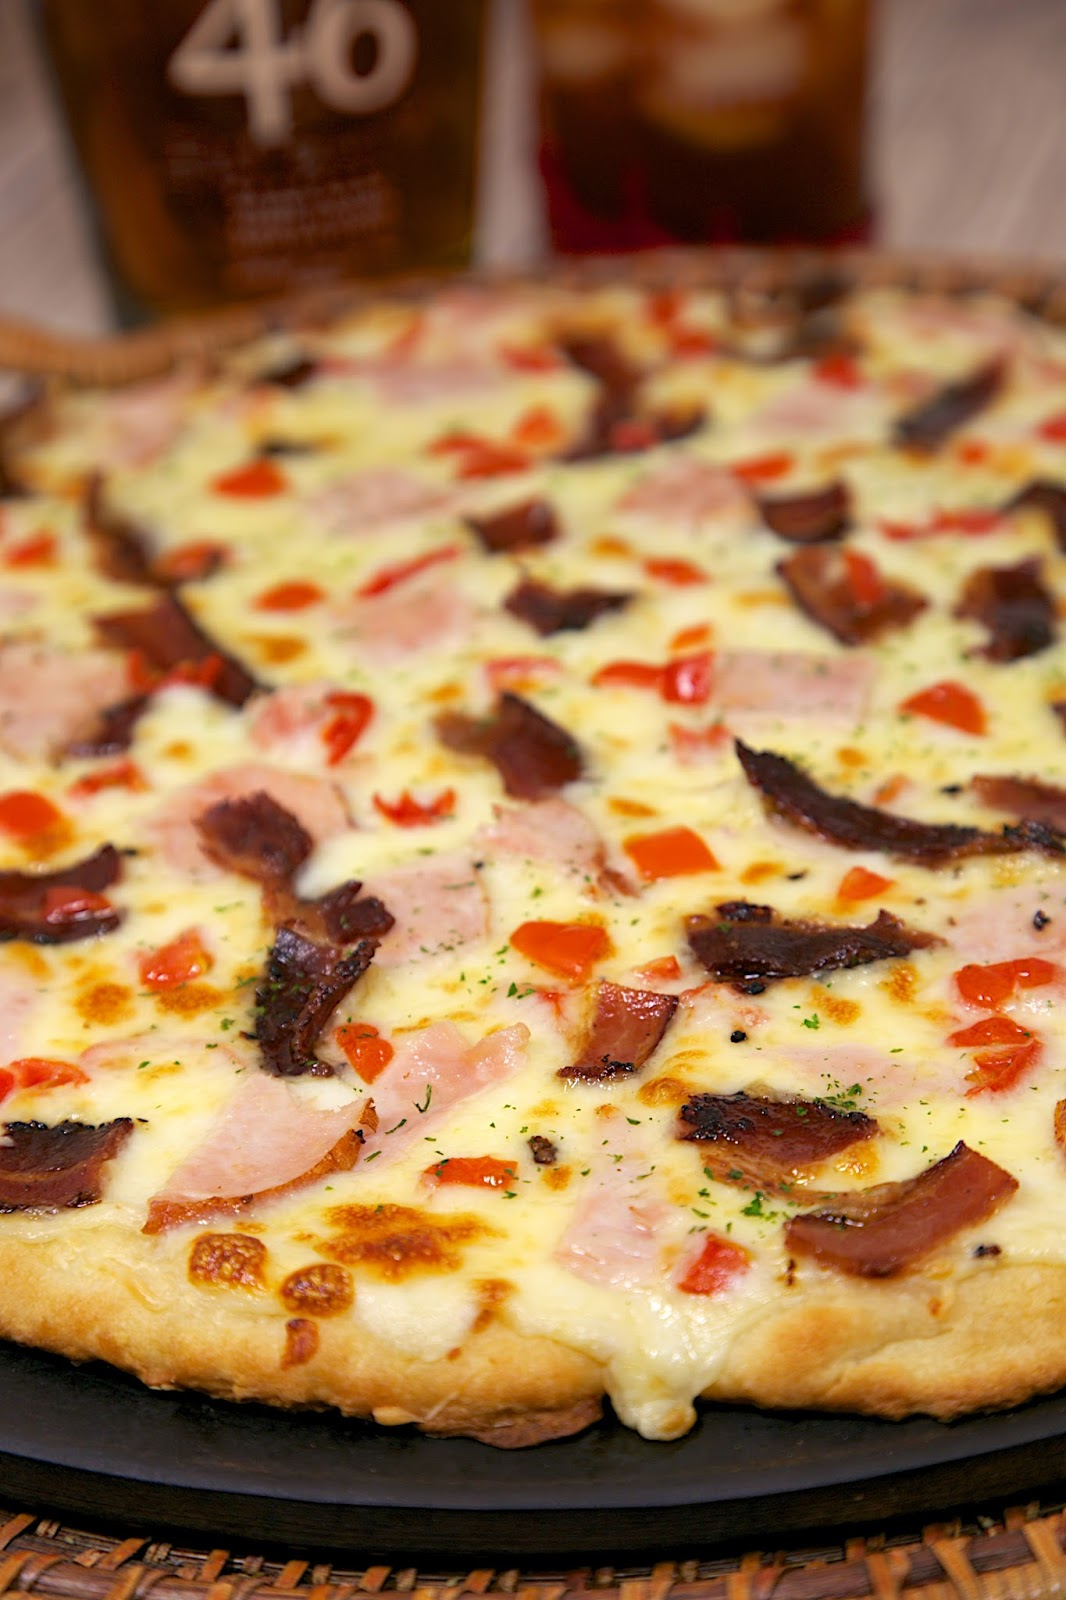 Hot Brown Pizza Recipe - mornay sauce(swiss cheese sauce), turkey, tomatoes, bacon, swiss and mozzarella cheese - perfect for watching the Kentucky Derby!